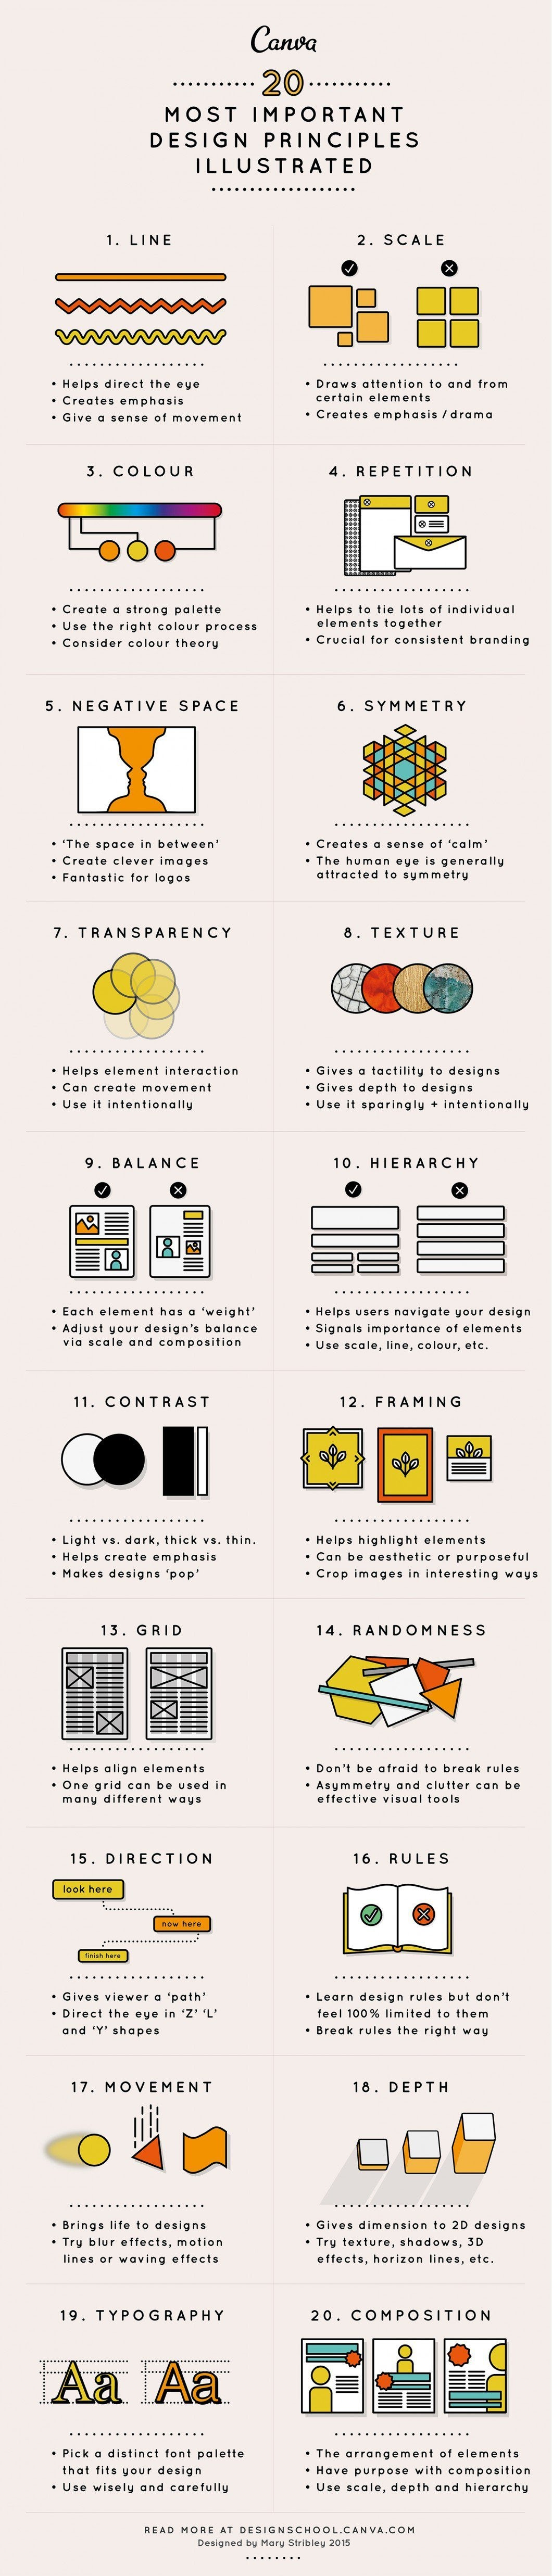 Design Elements & Principles - #infographic